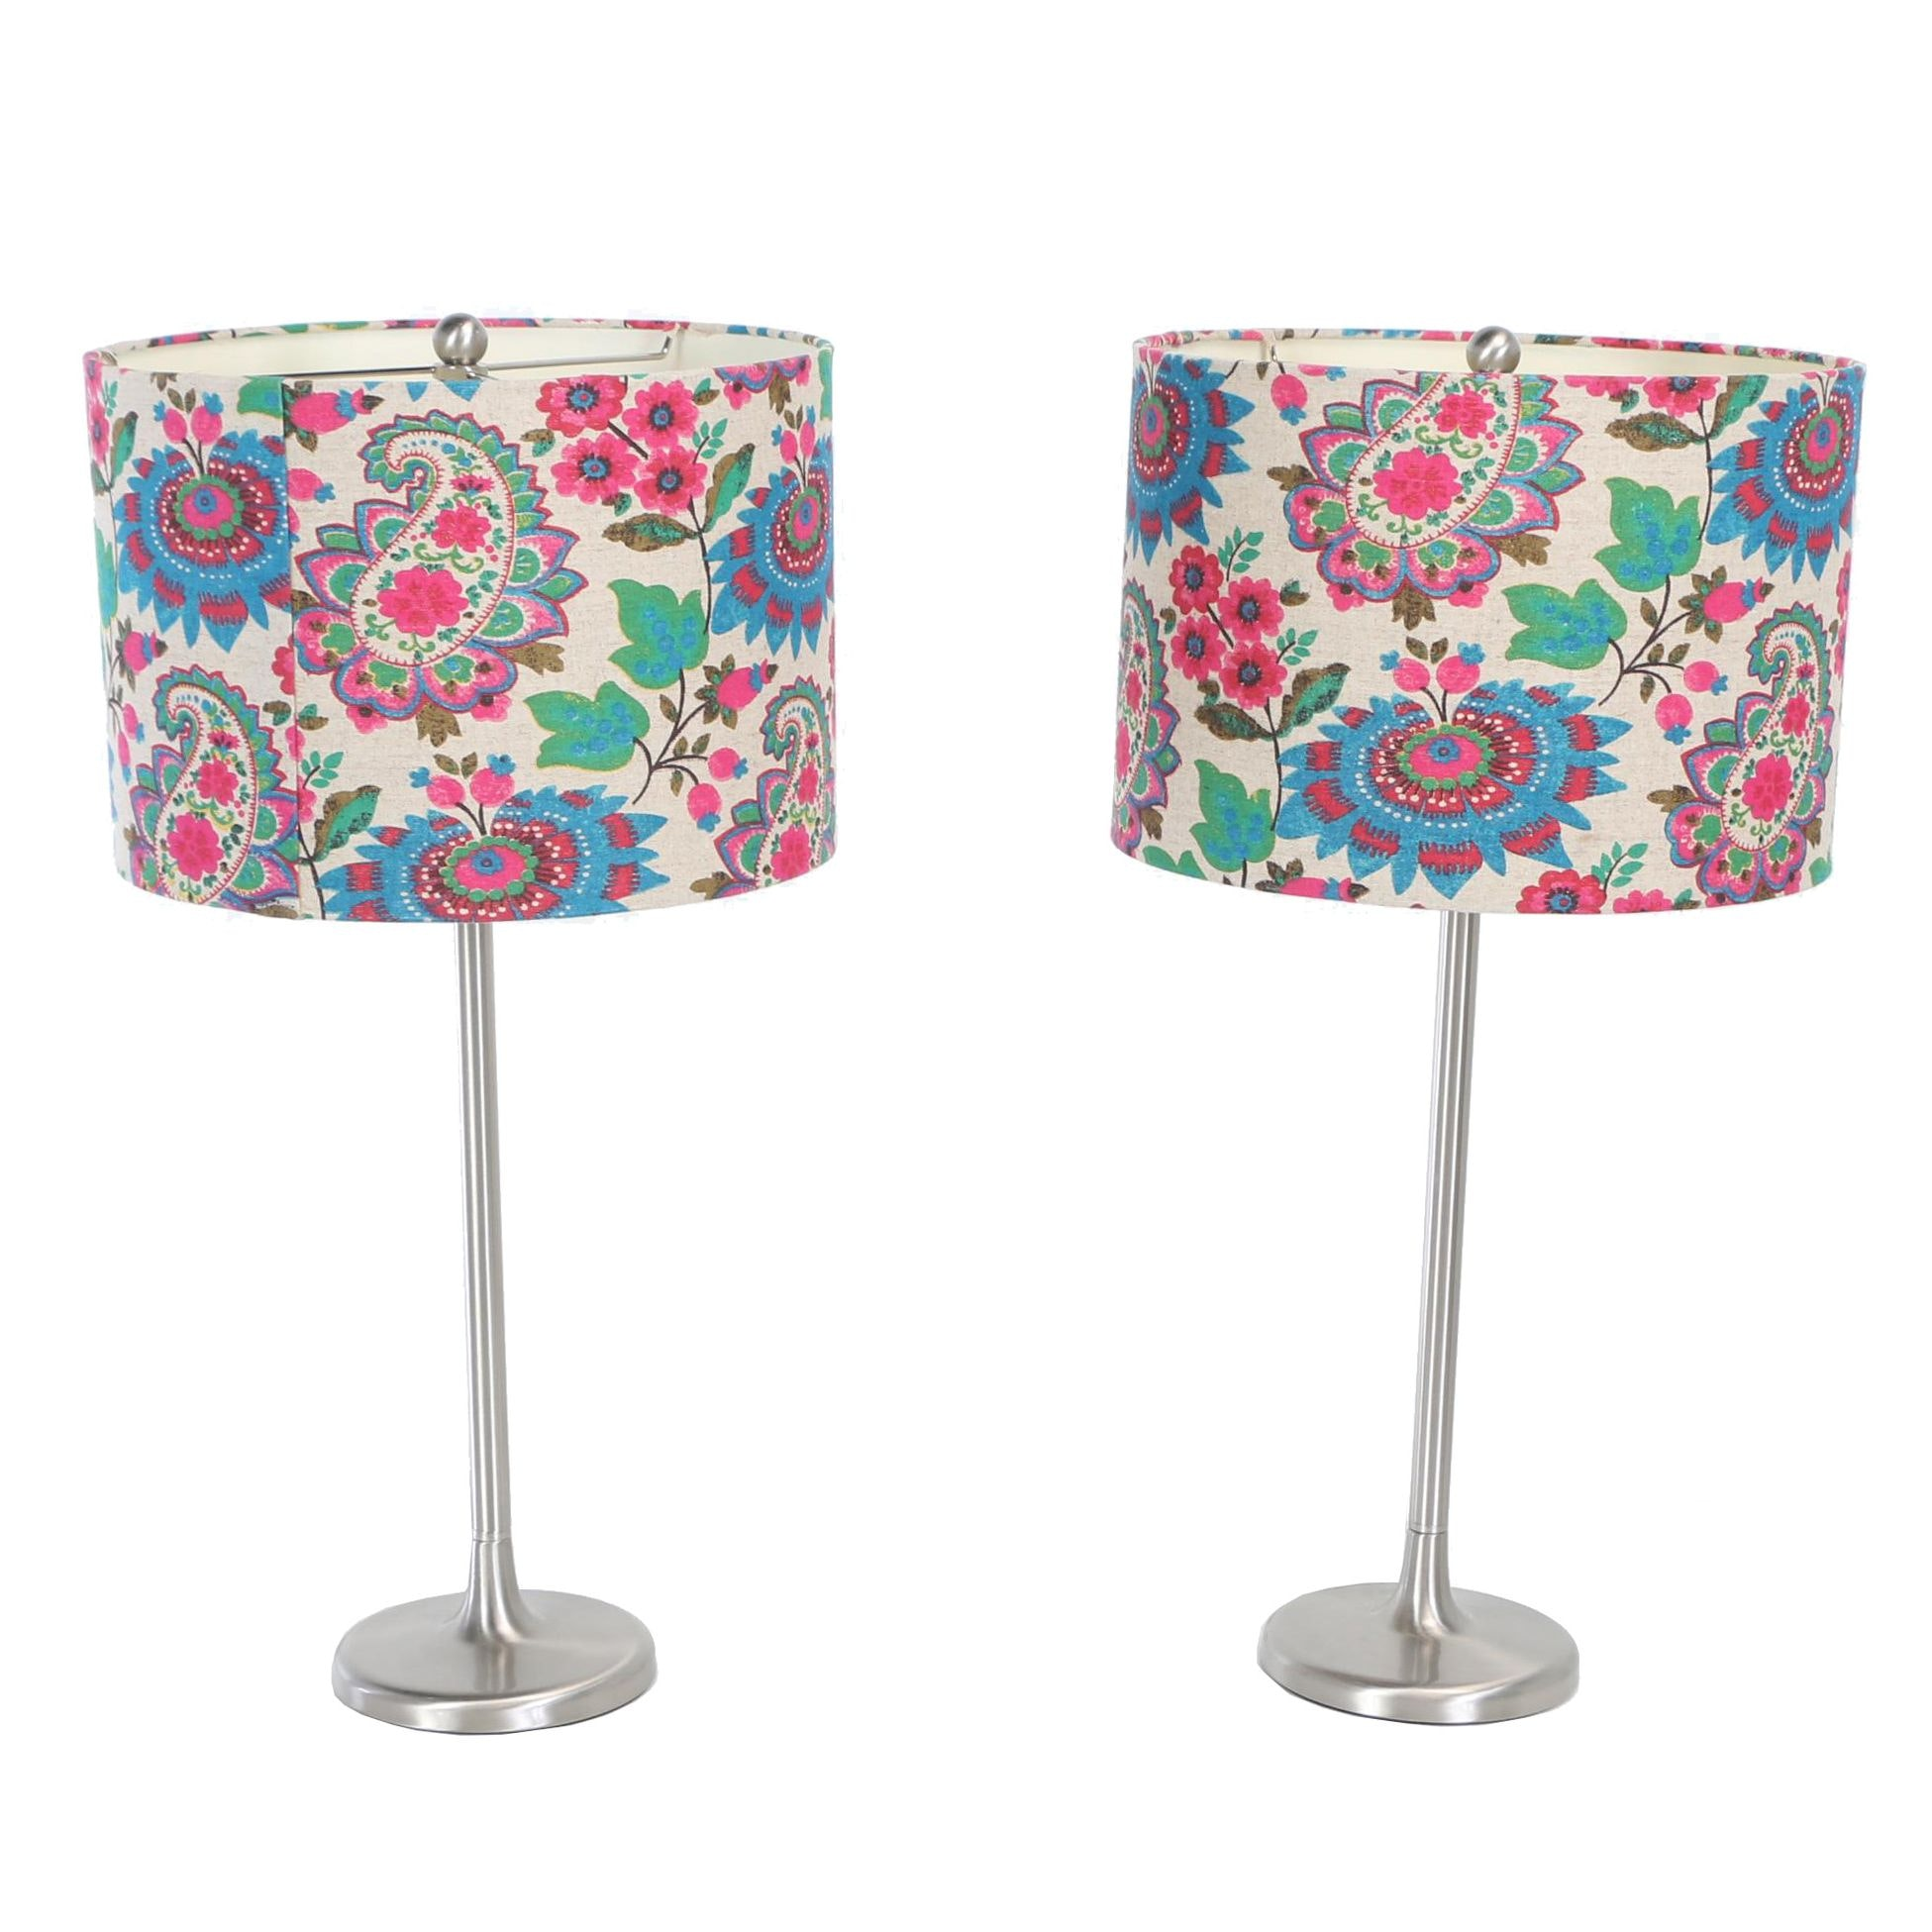 Modernist Style Brushed Steel Table Lamps with Printed Floral Shades